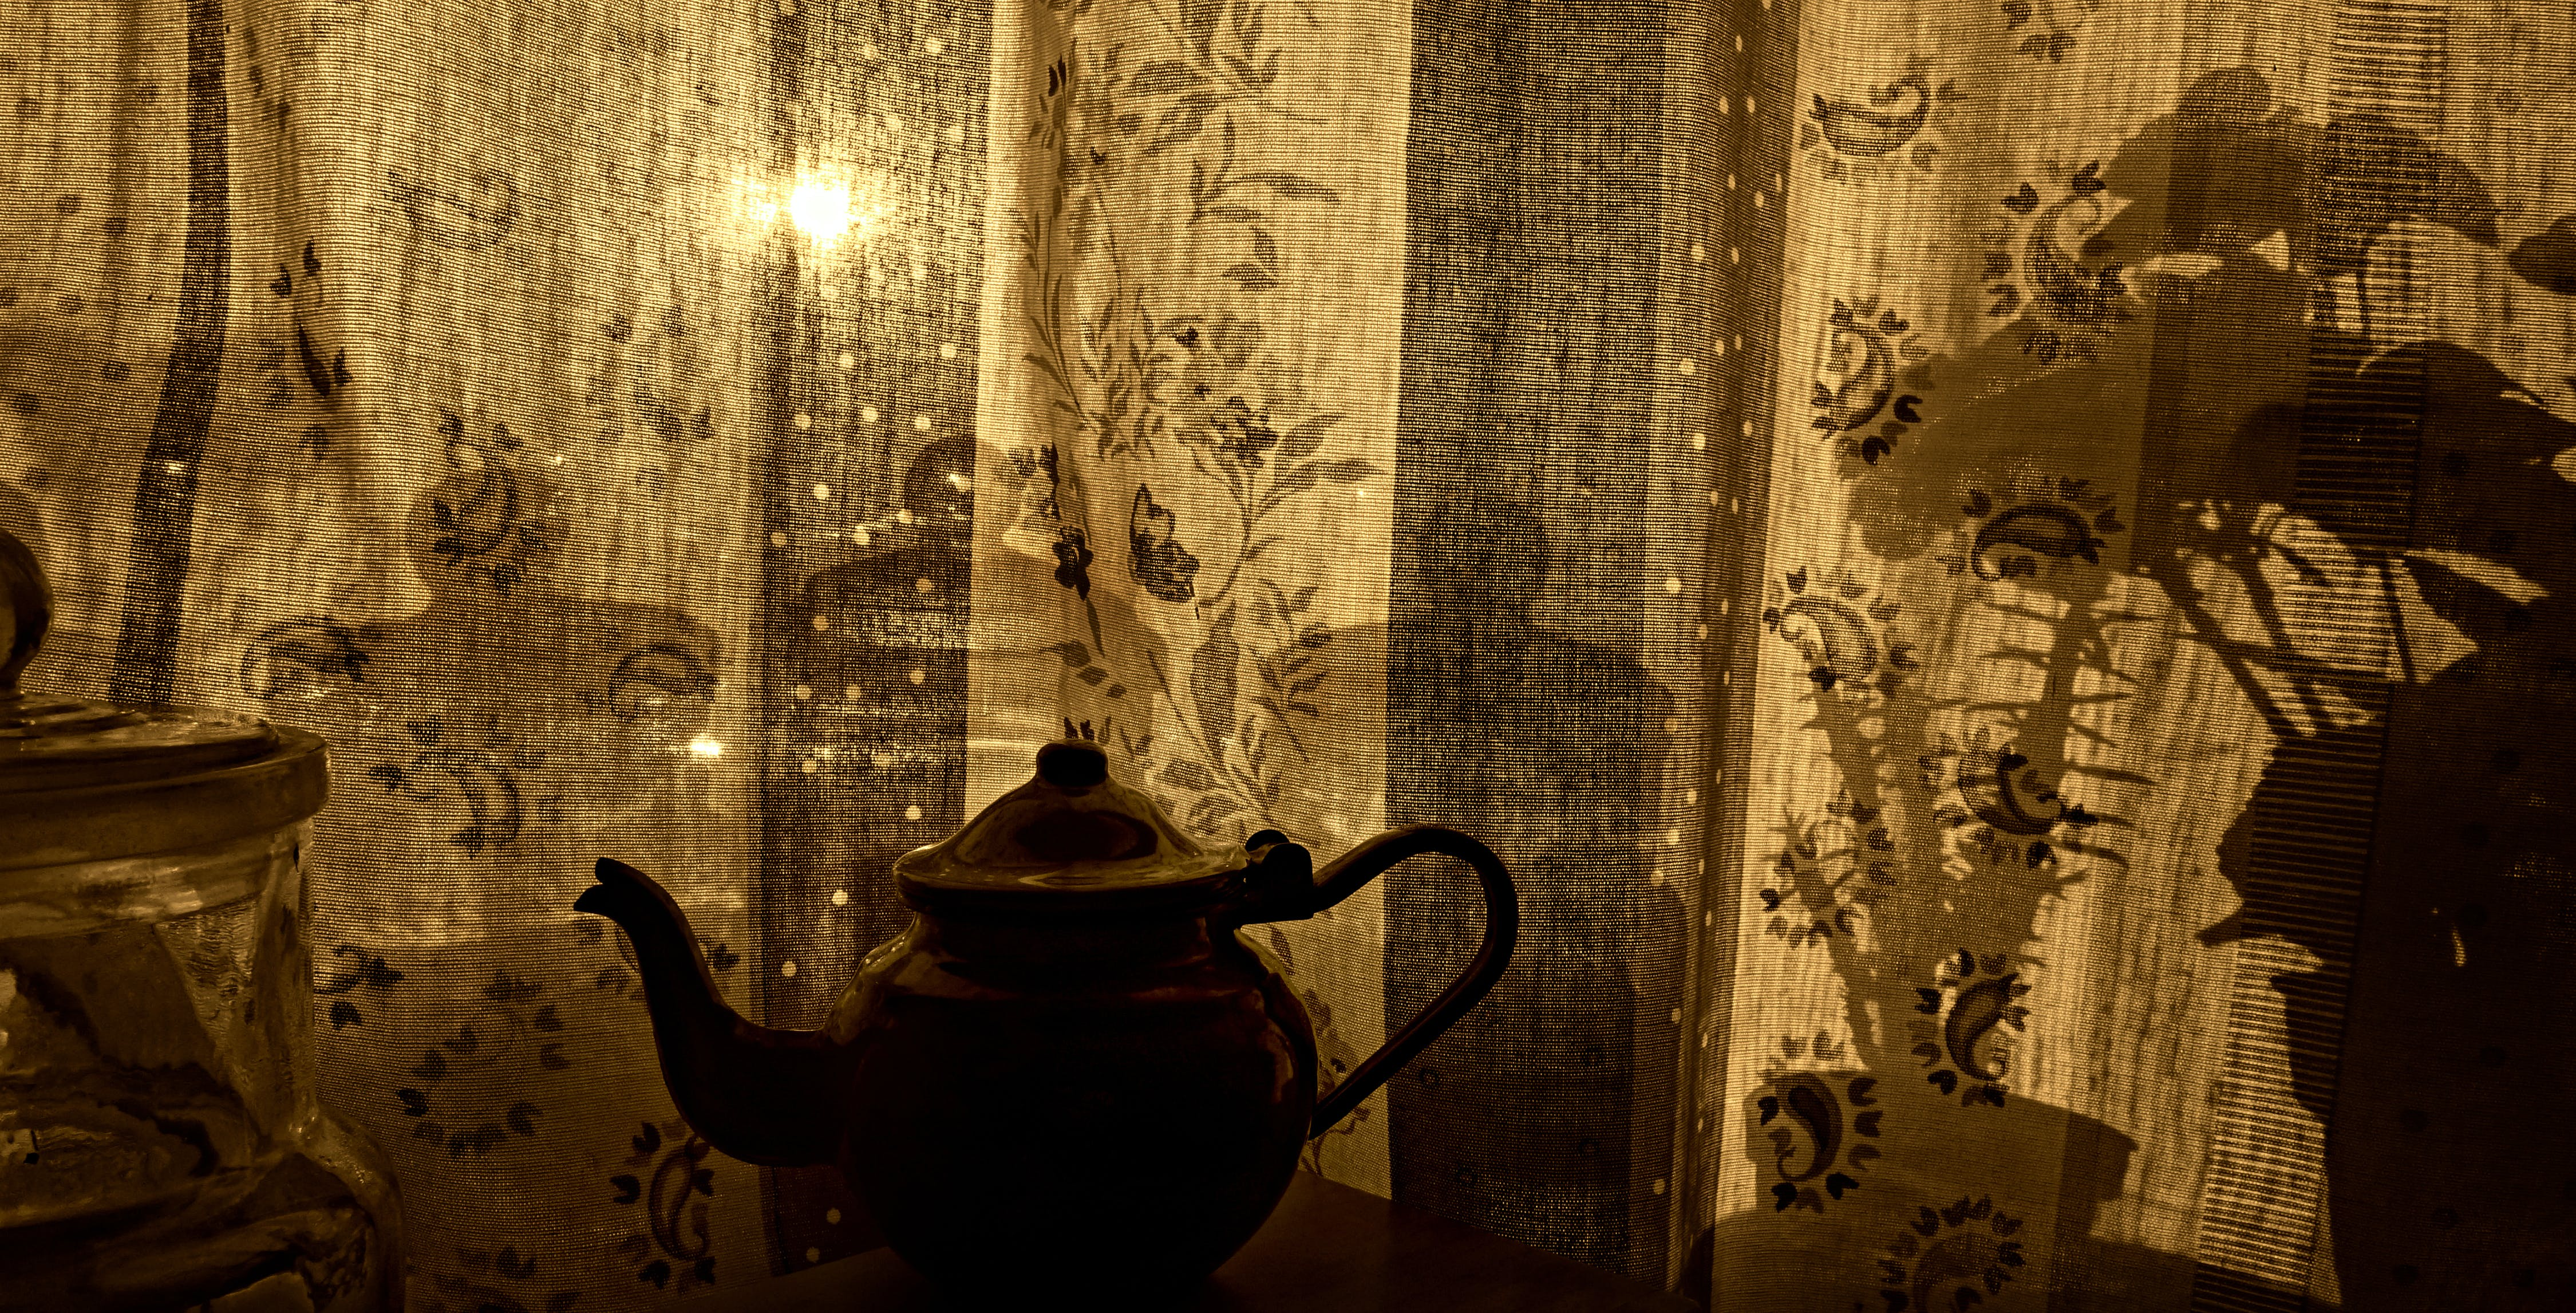 of curtain, objects, silhouette, sunlight